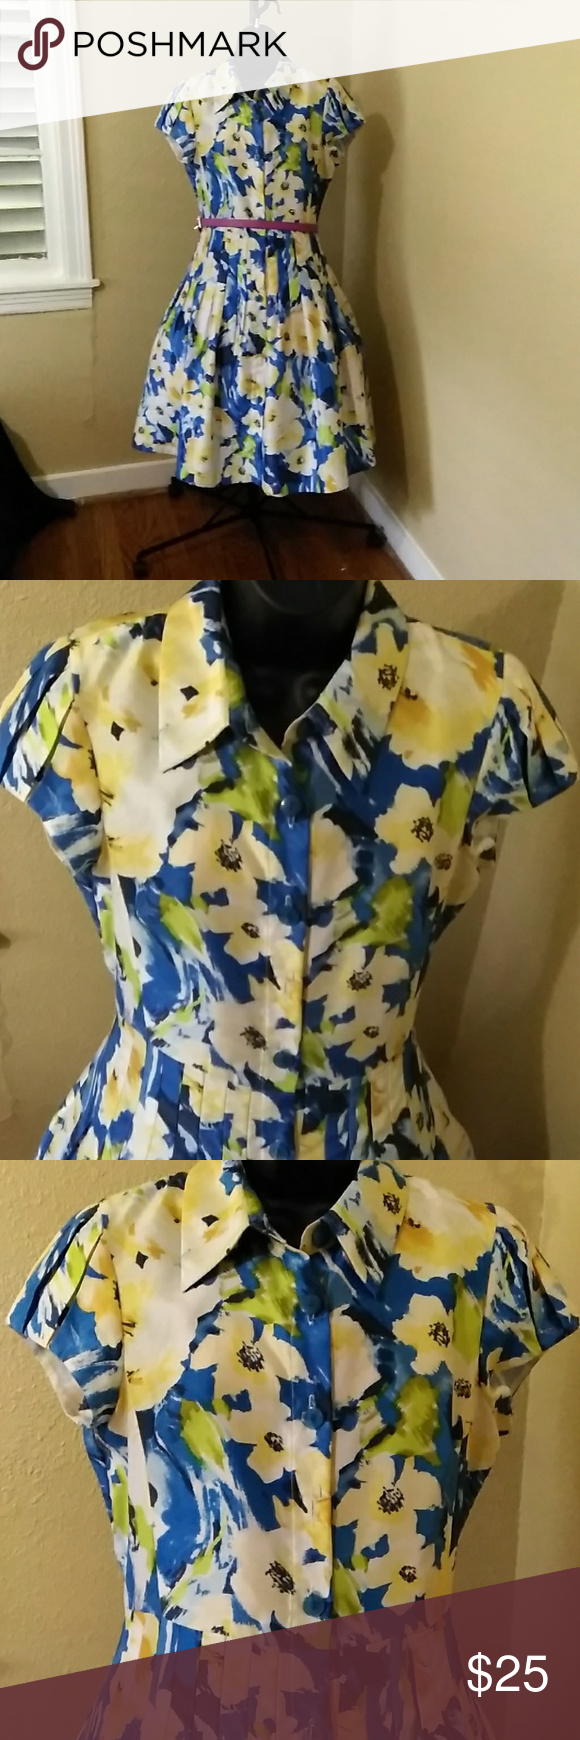 Modcloth Floral Blue Yellow Dress Blue And Yellow Dress Pretty Floral Dress Yellow Dress [ 1740 x 580 Pixel ]